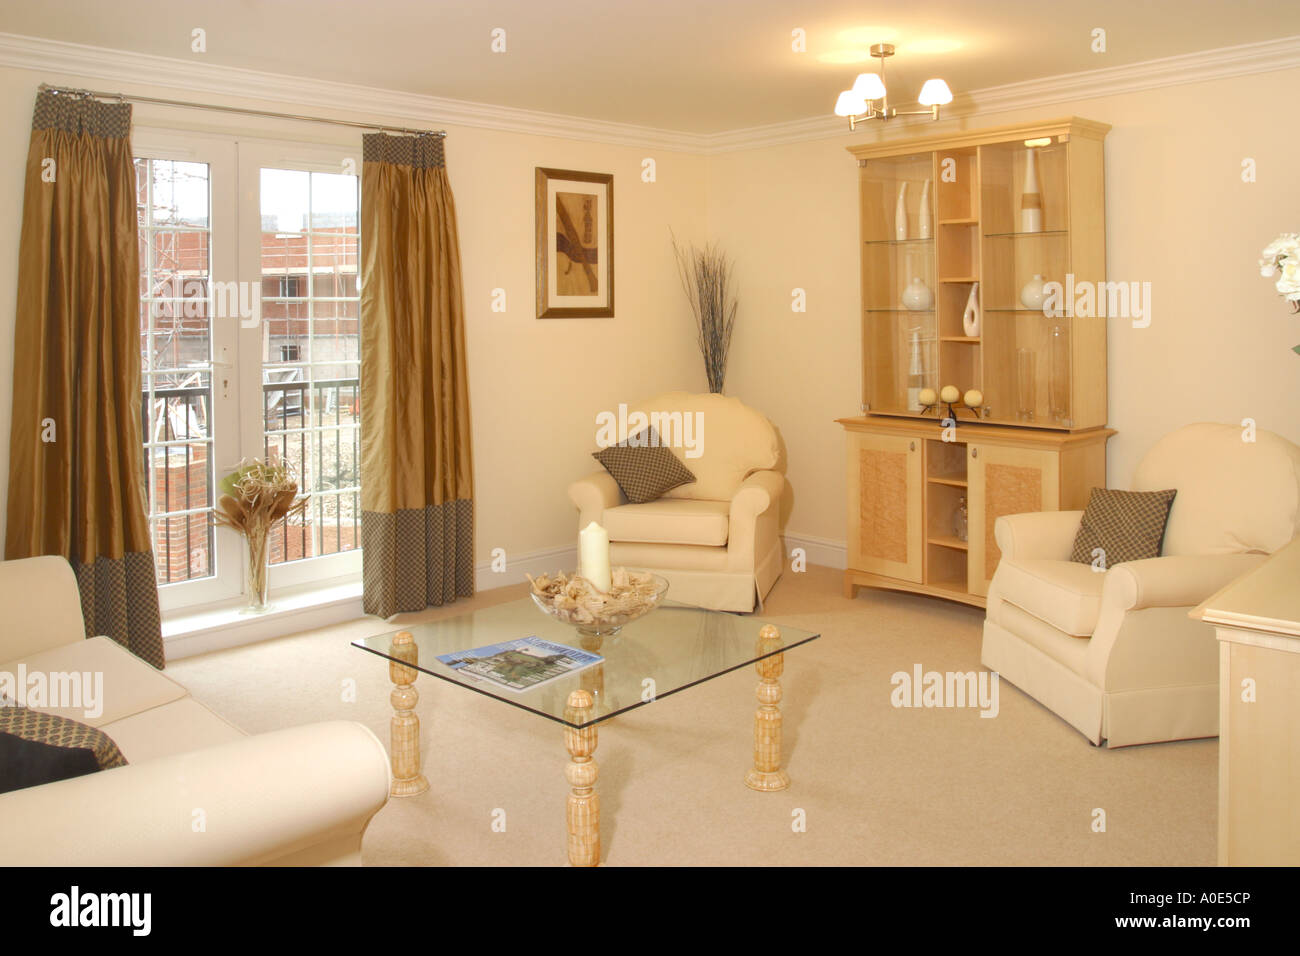 UK showhome interior, furnished living room. - Stock Image